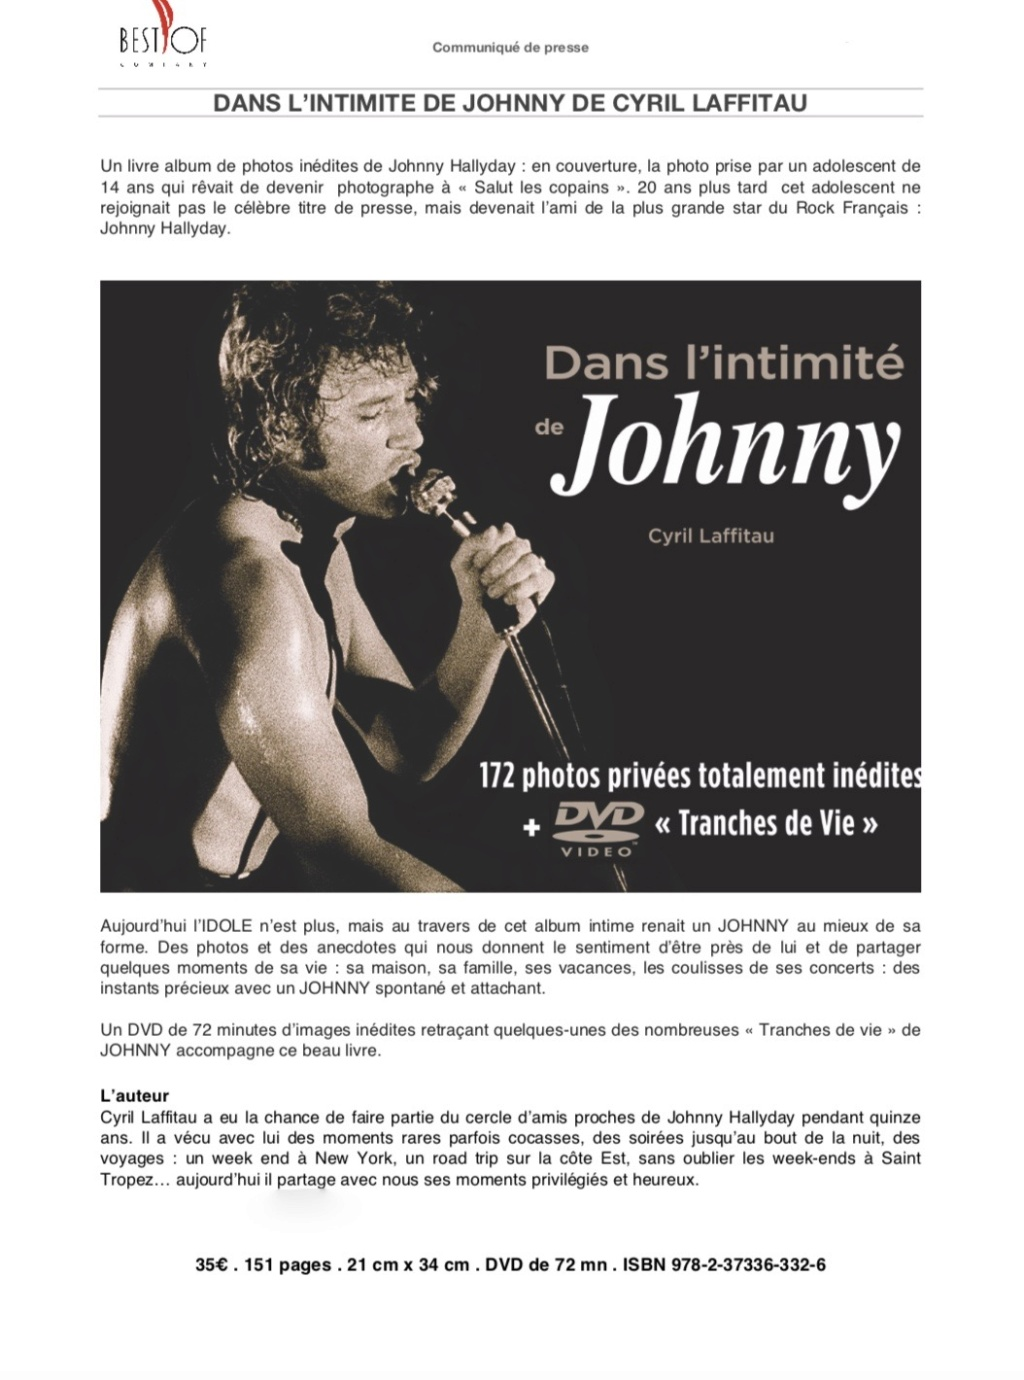 Dansl'intimité de Johnny Captur10